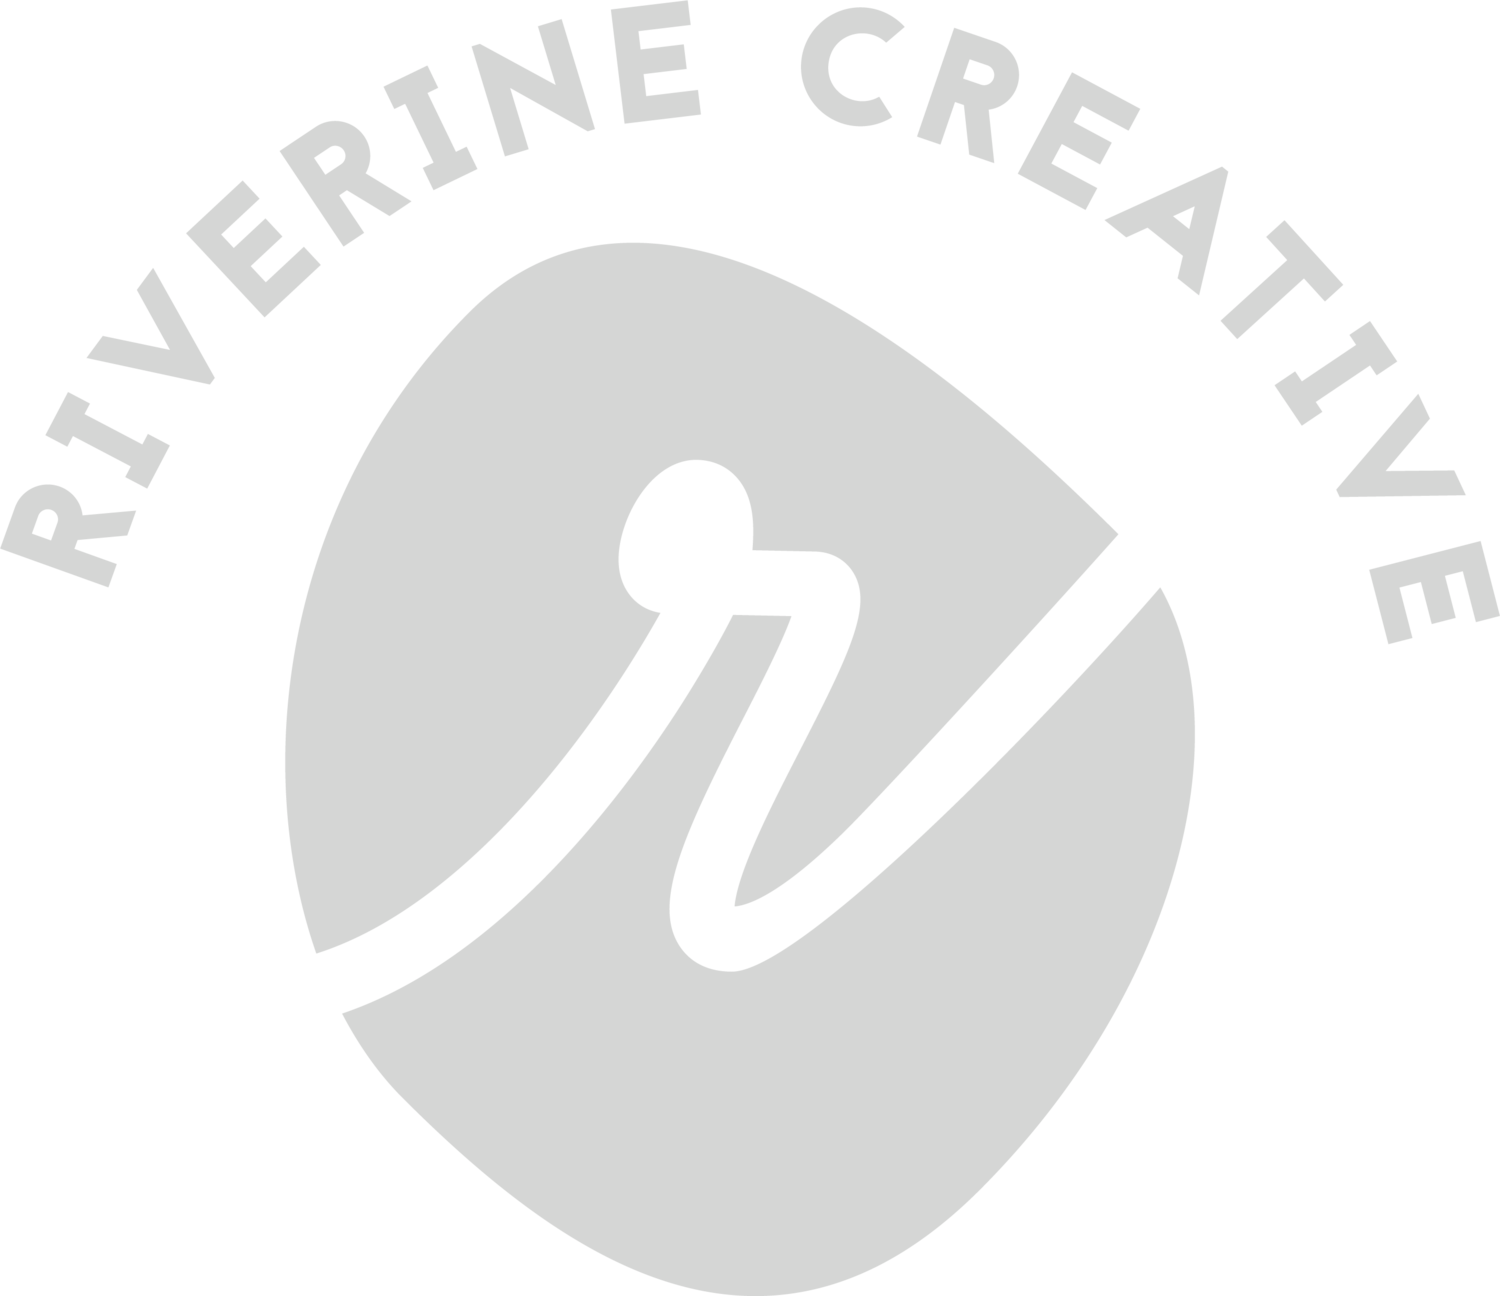 Riverine Creative